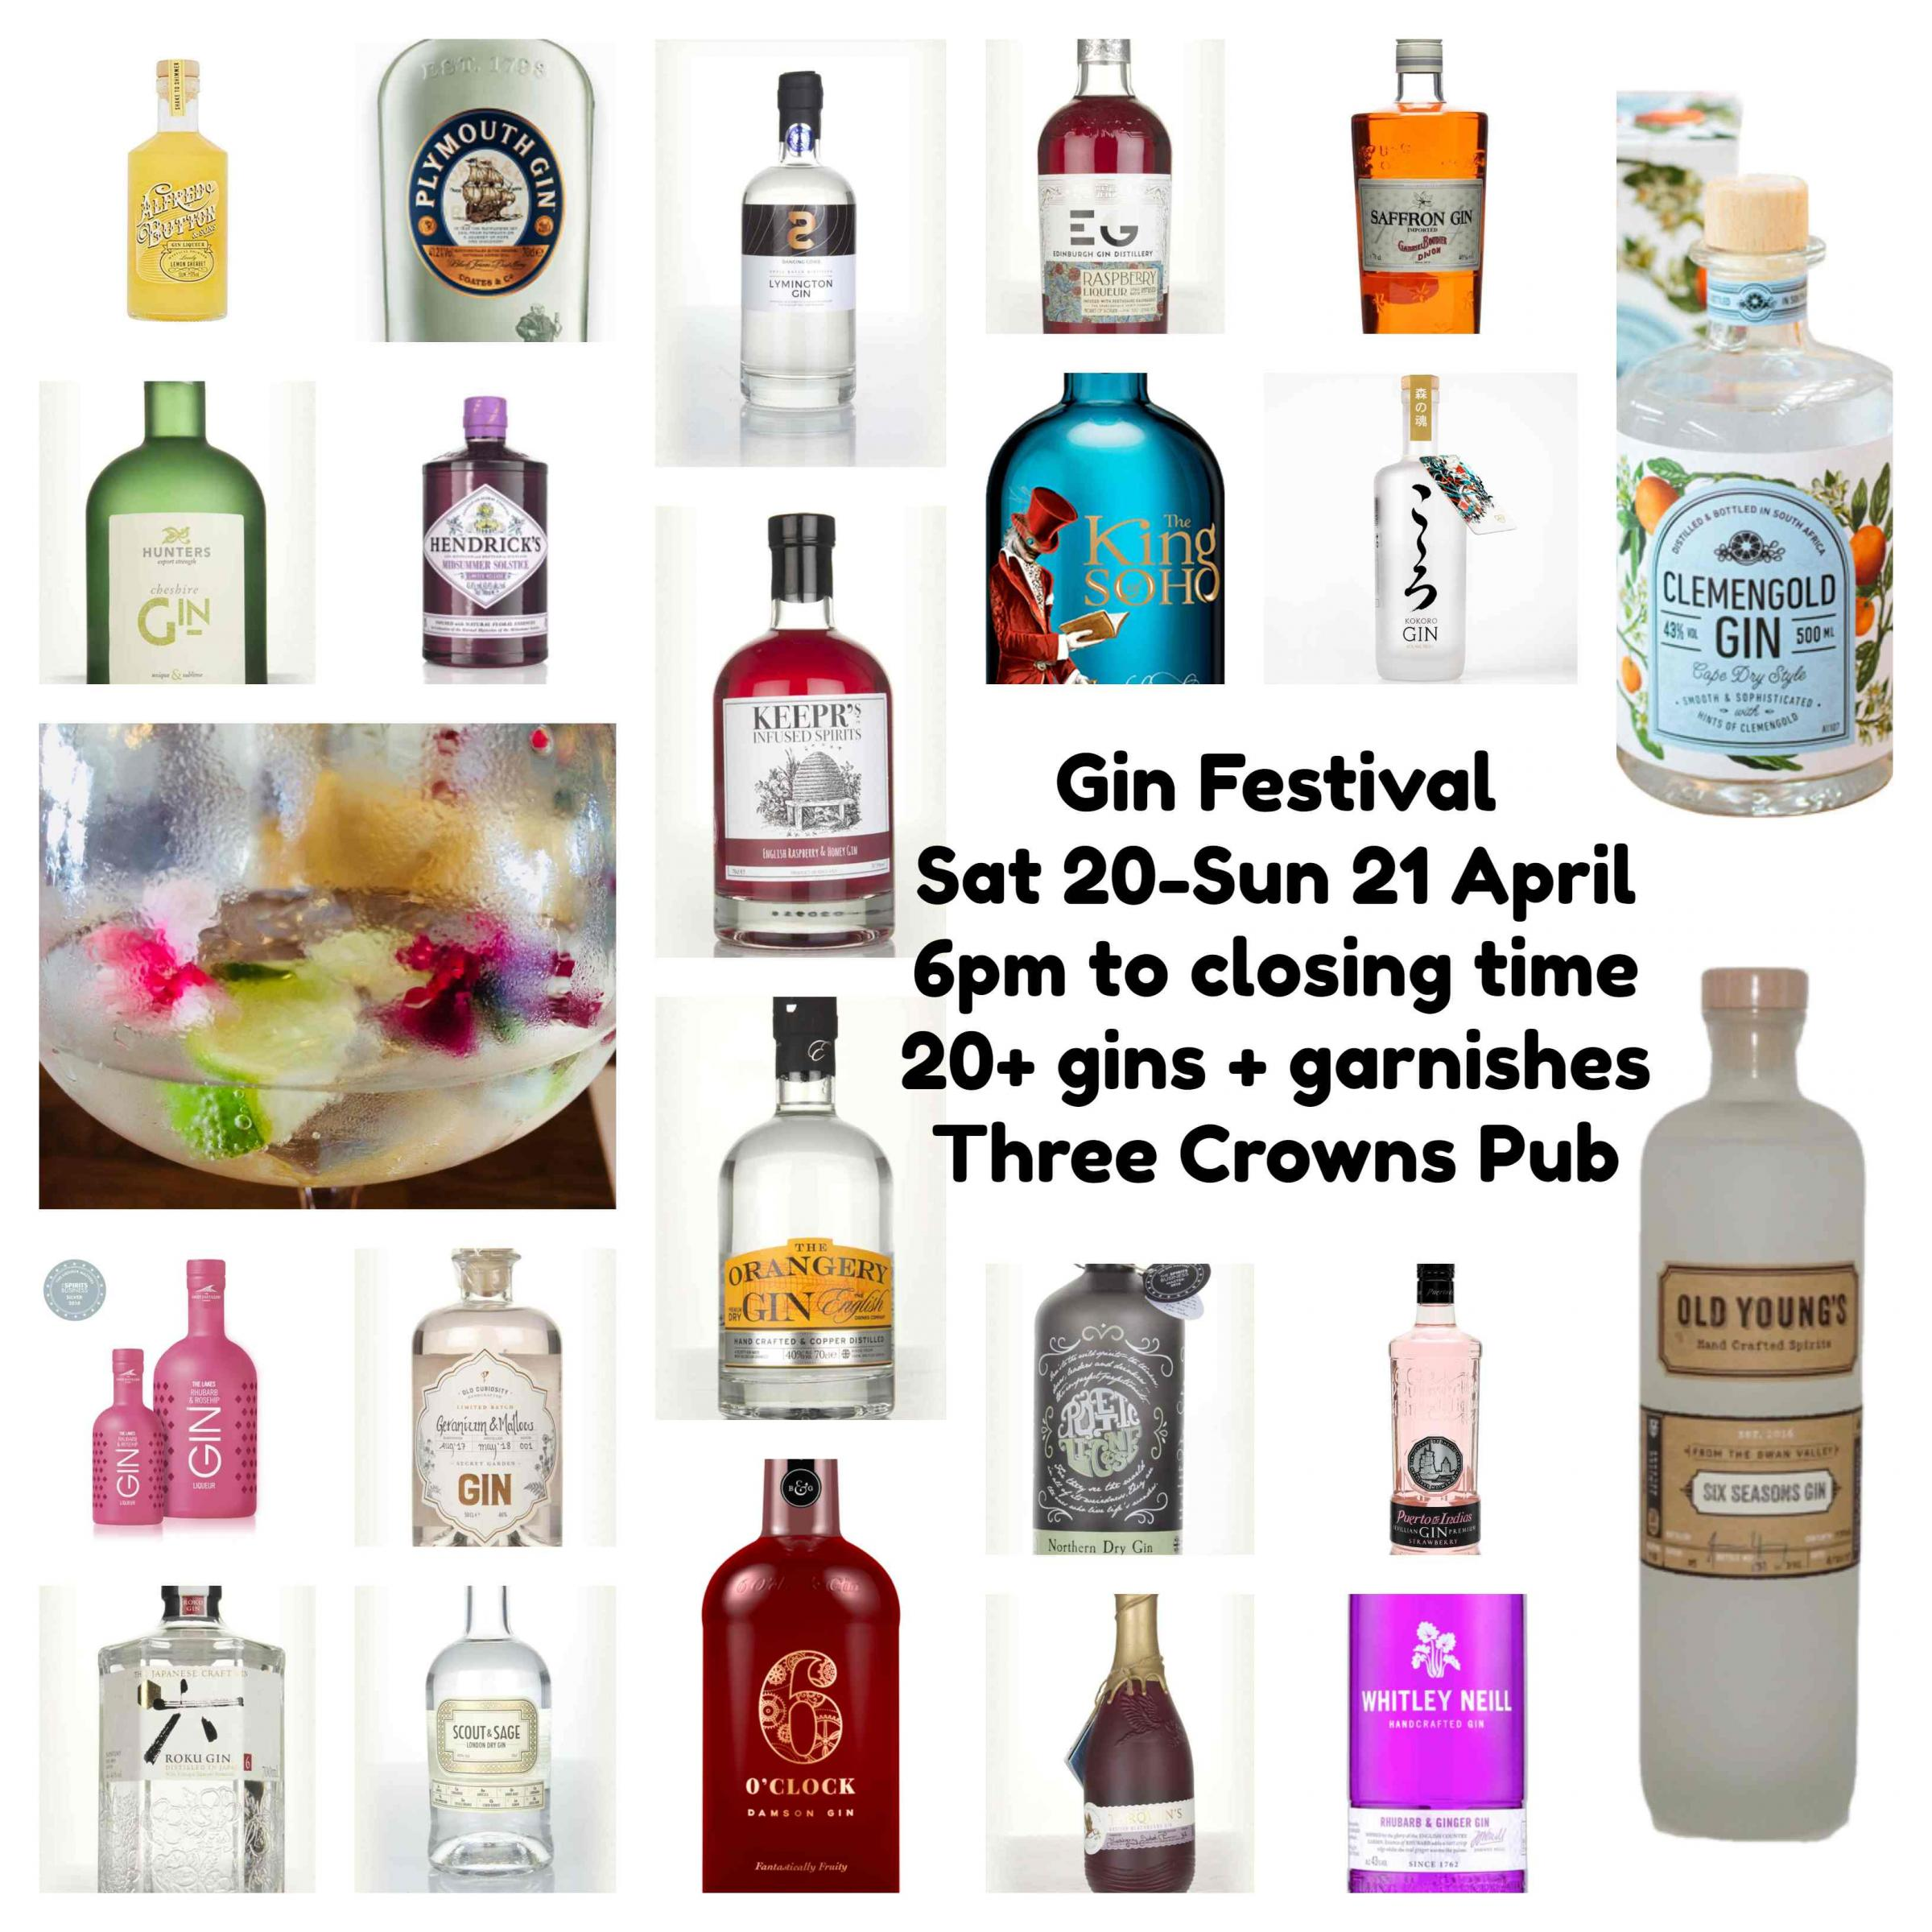 3 Crowns Easter Gin Festival